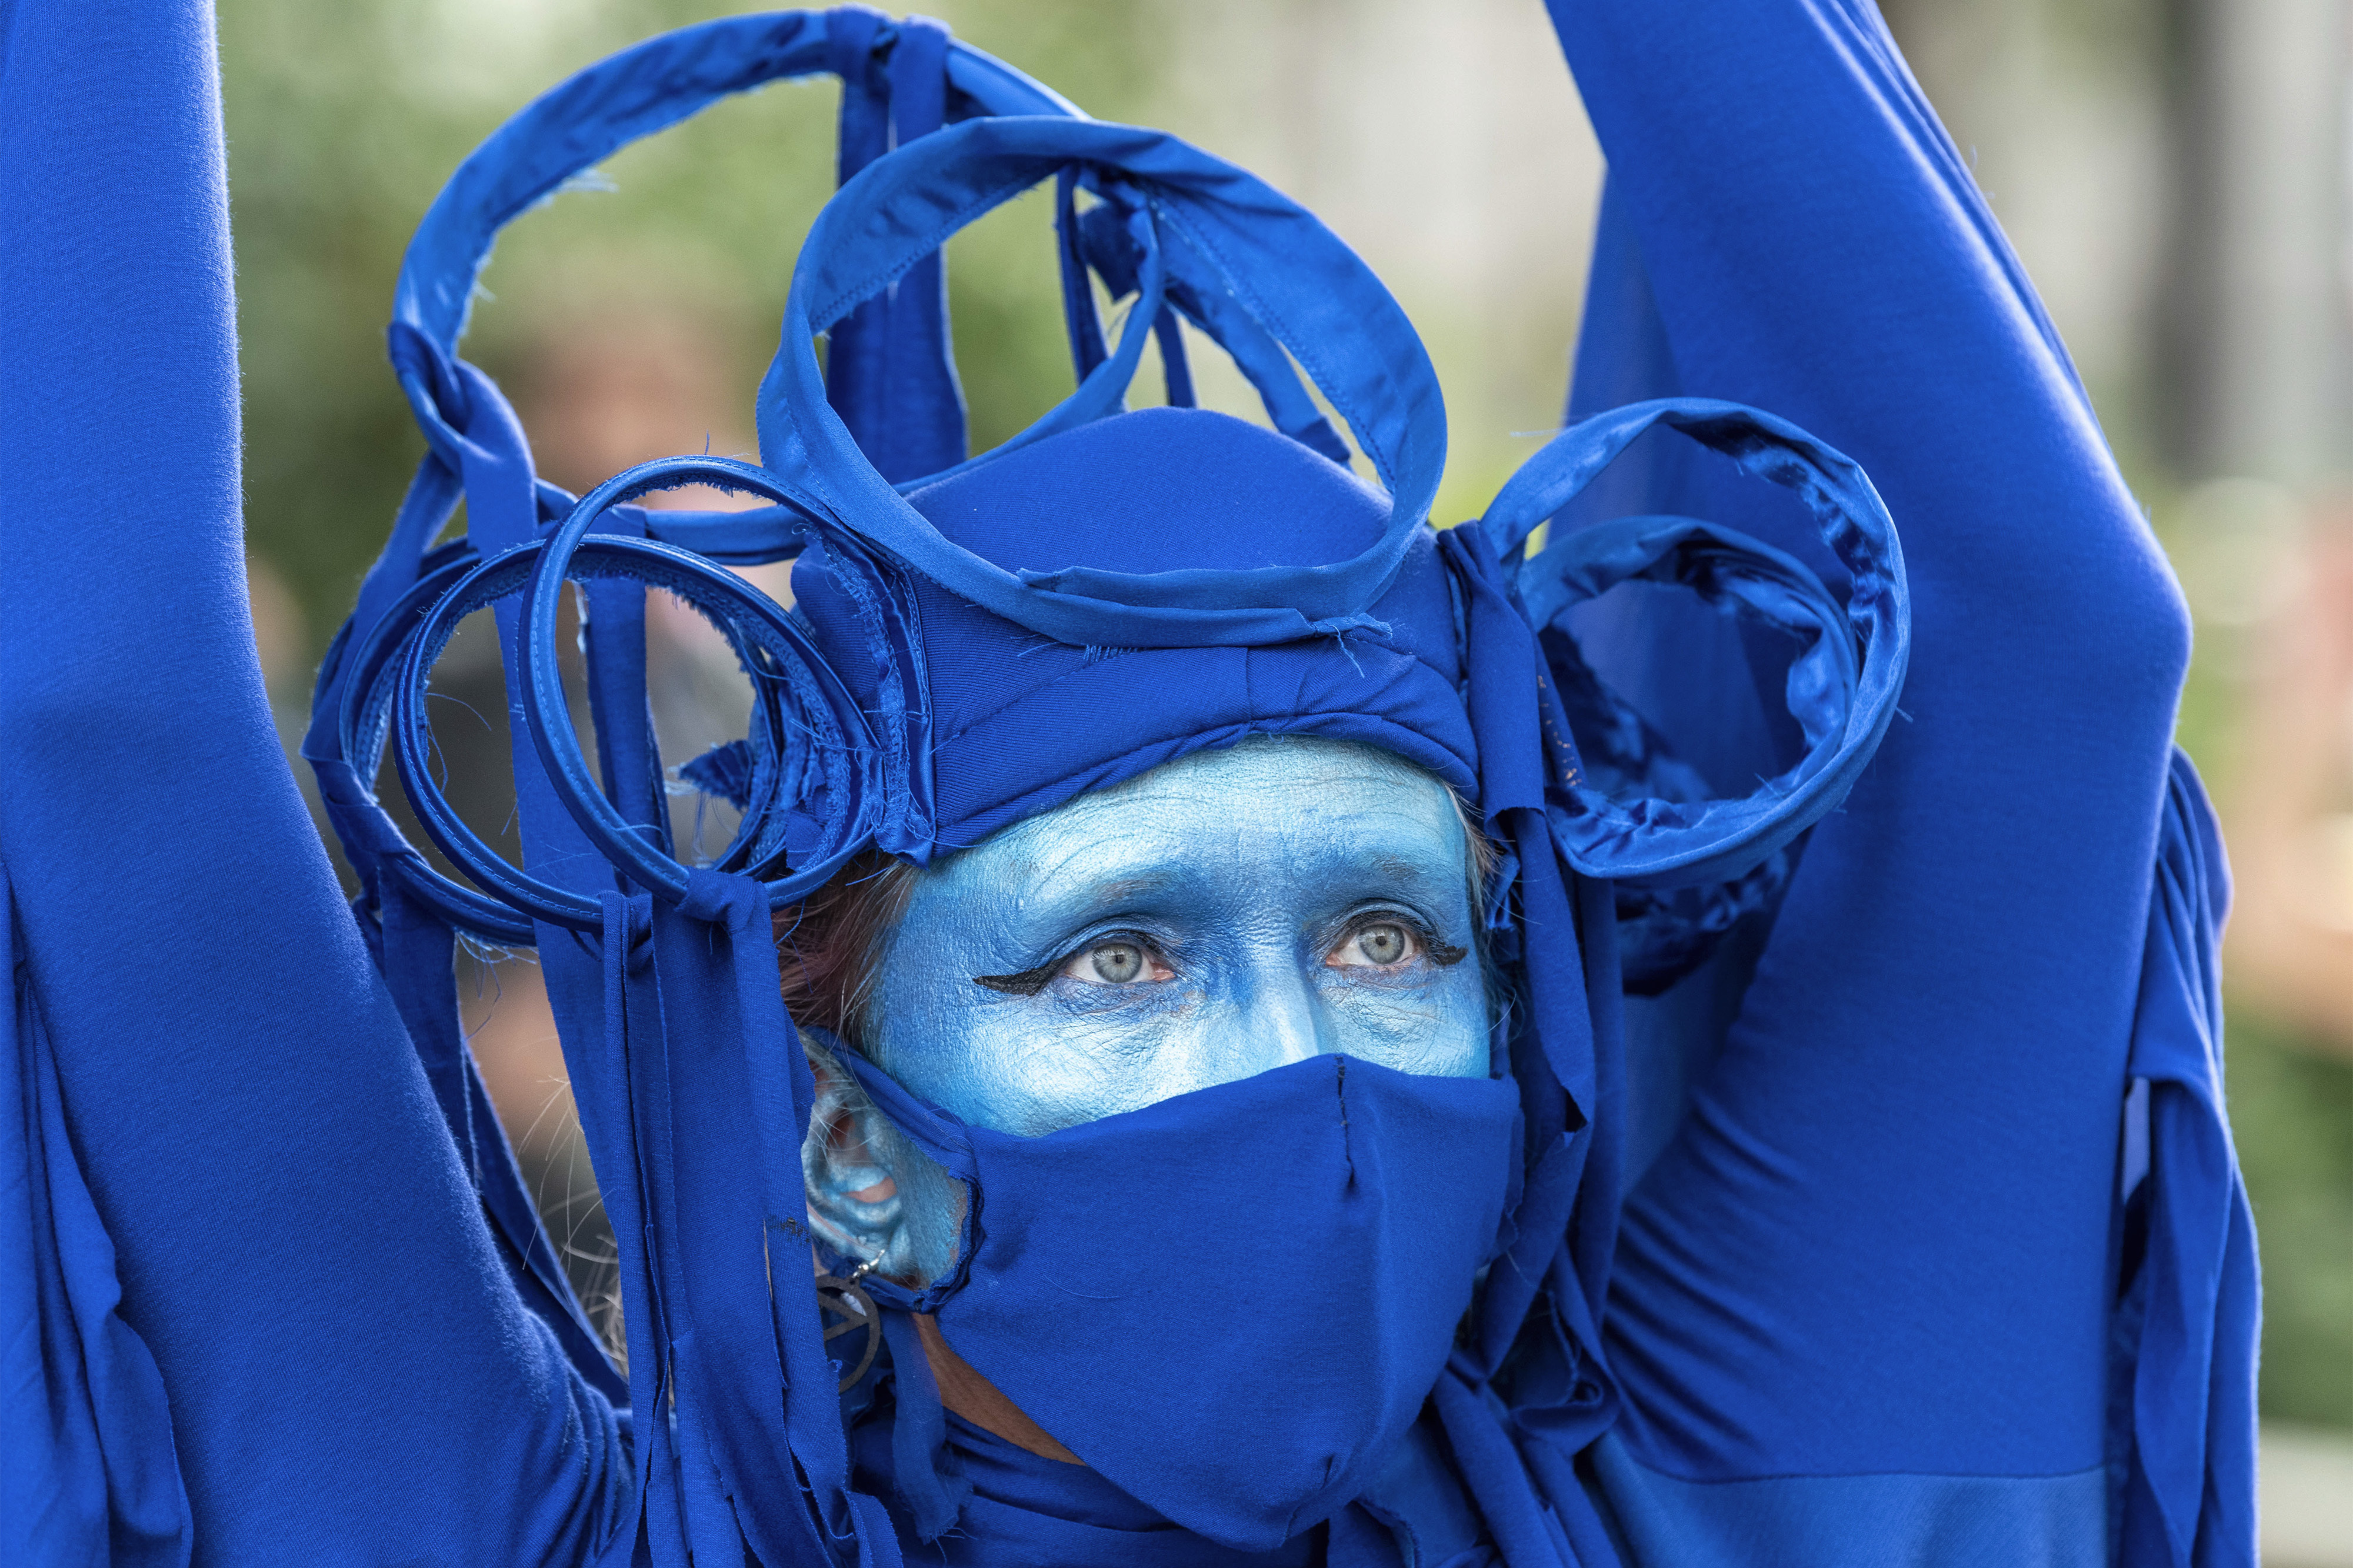 A protester wears a blue outfit to represent the ocean during the demonstration. The groups of Extinction Rebellion Marine, Ocean Rebellion, Sea Life Extinction and Animal Rebellion marched in London in a �socially distanced grief march� to demand protection for the oceans and in protest against global governmental inaction to save the seas due to climate breakdown and human interference, and the loss of lives, homes and livelihoods from rising sea levels. (Photo by Dave Rushen / SOPA Images/Sipa USA)